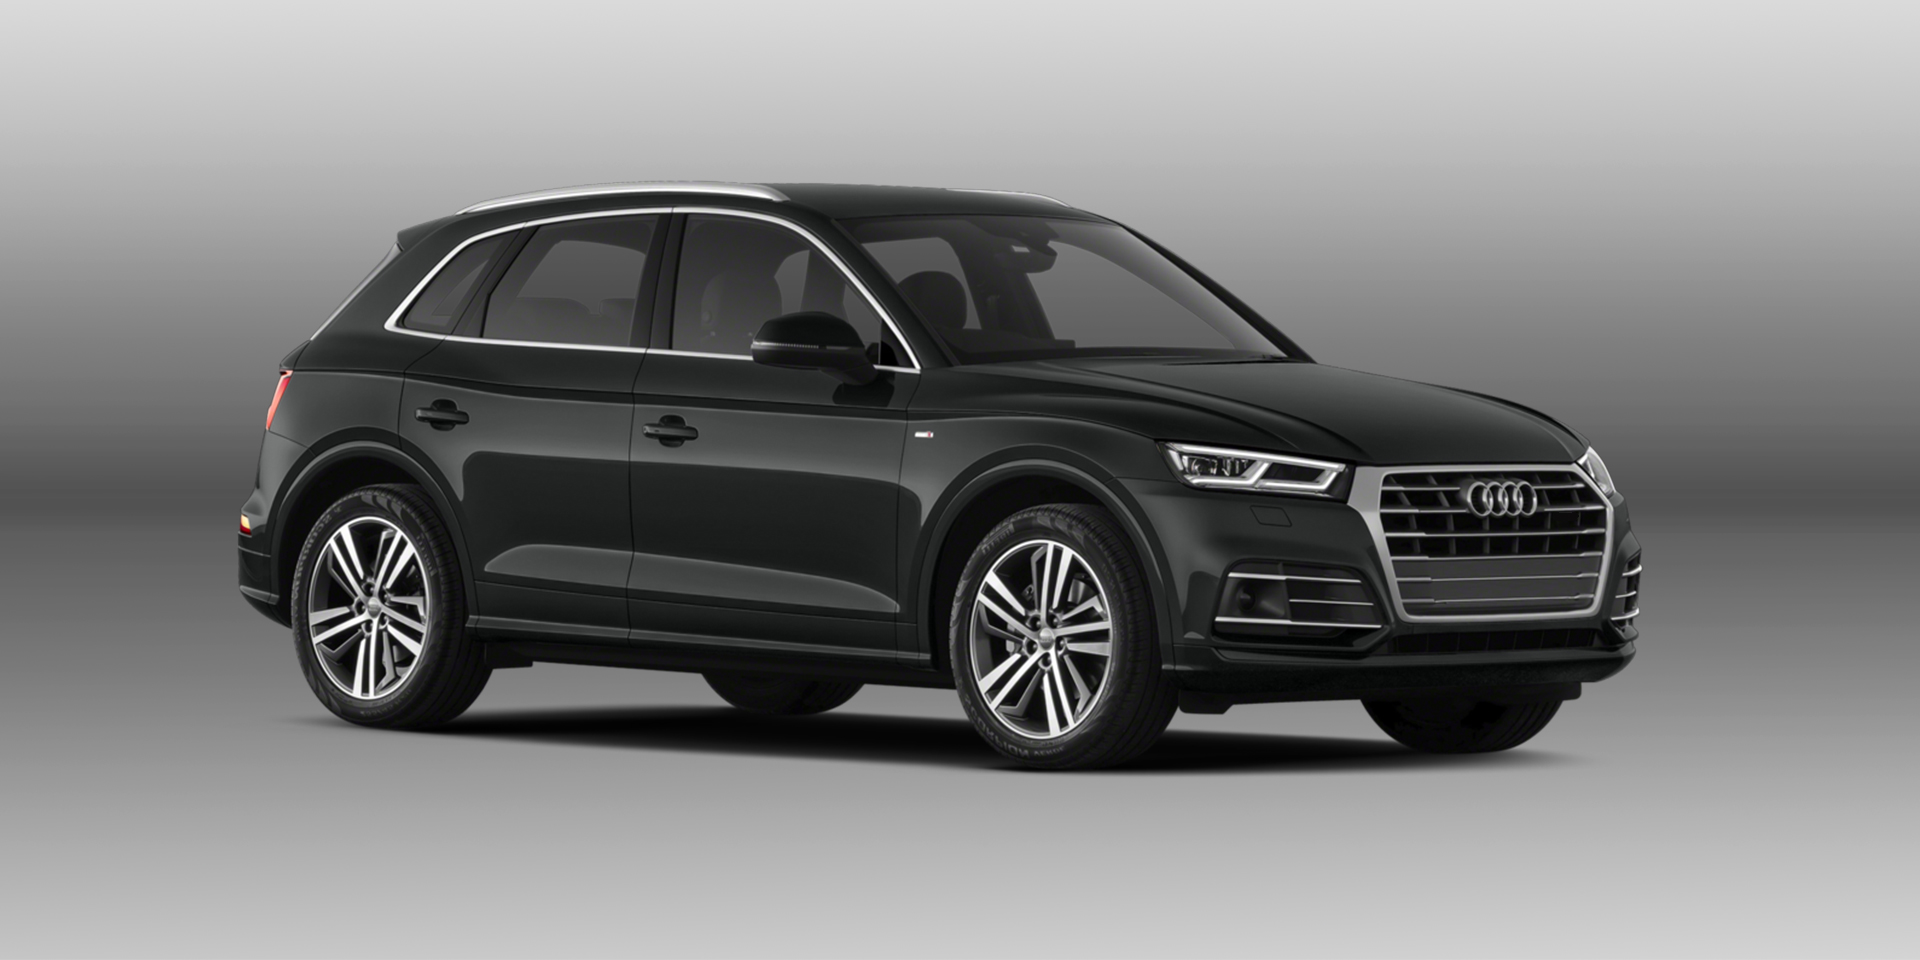 Car buying guide: Audi Q5